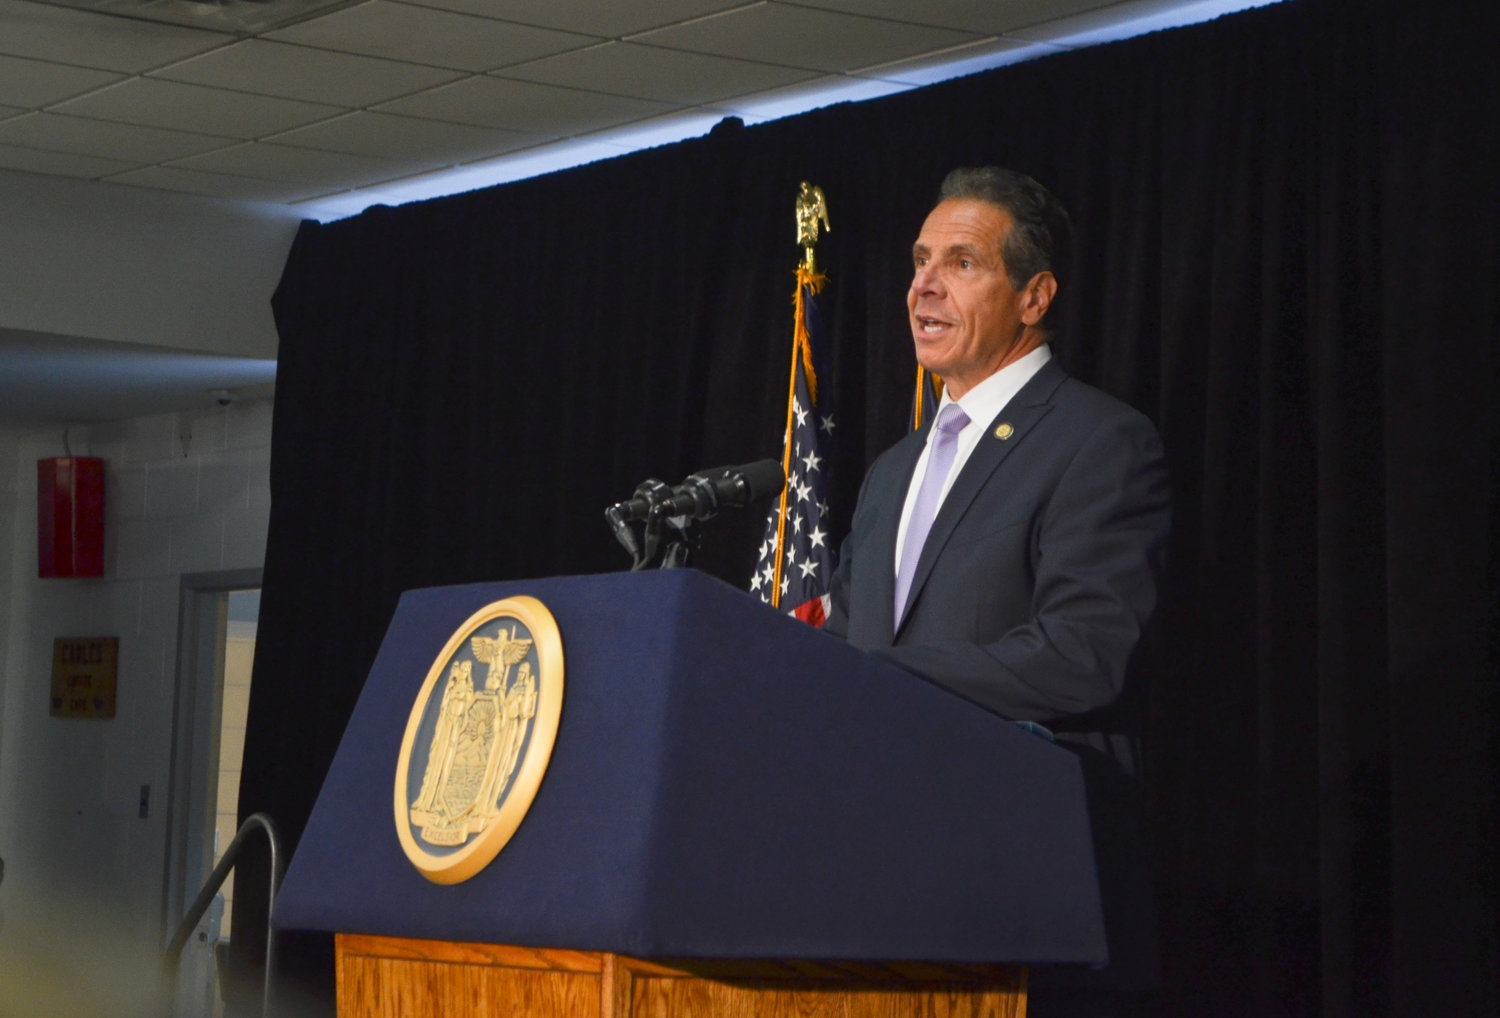 New York has banned gatherings of 50 or more people because of the coronavirus, according to Governor Cuomo.